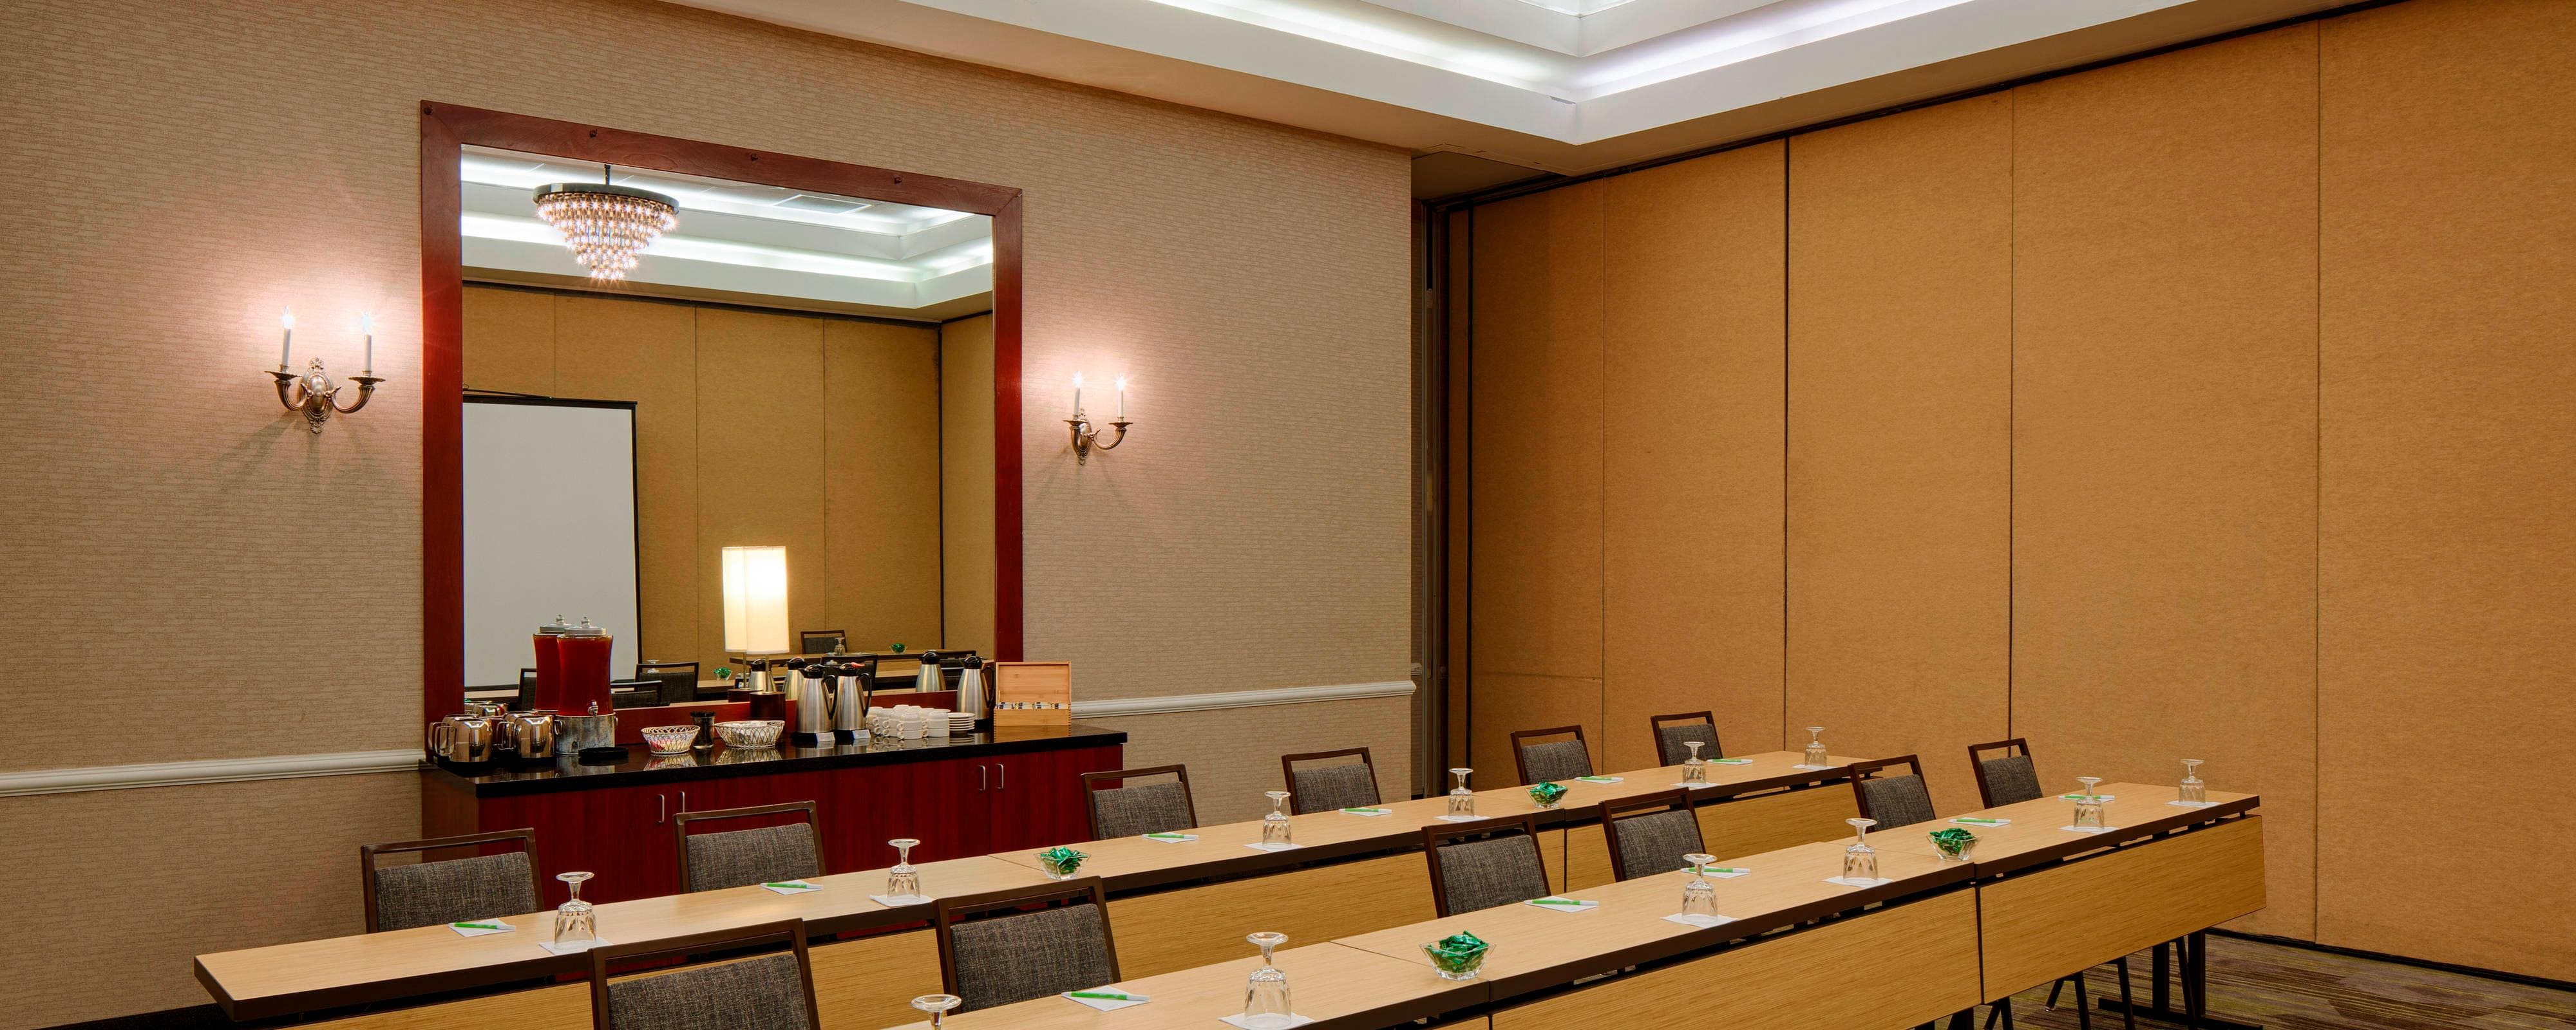 Hotels With Meeting Rooms Columbus Ohio